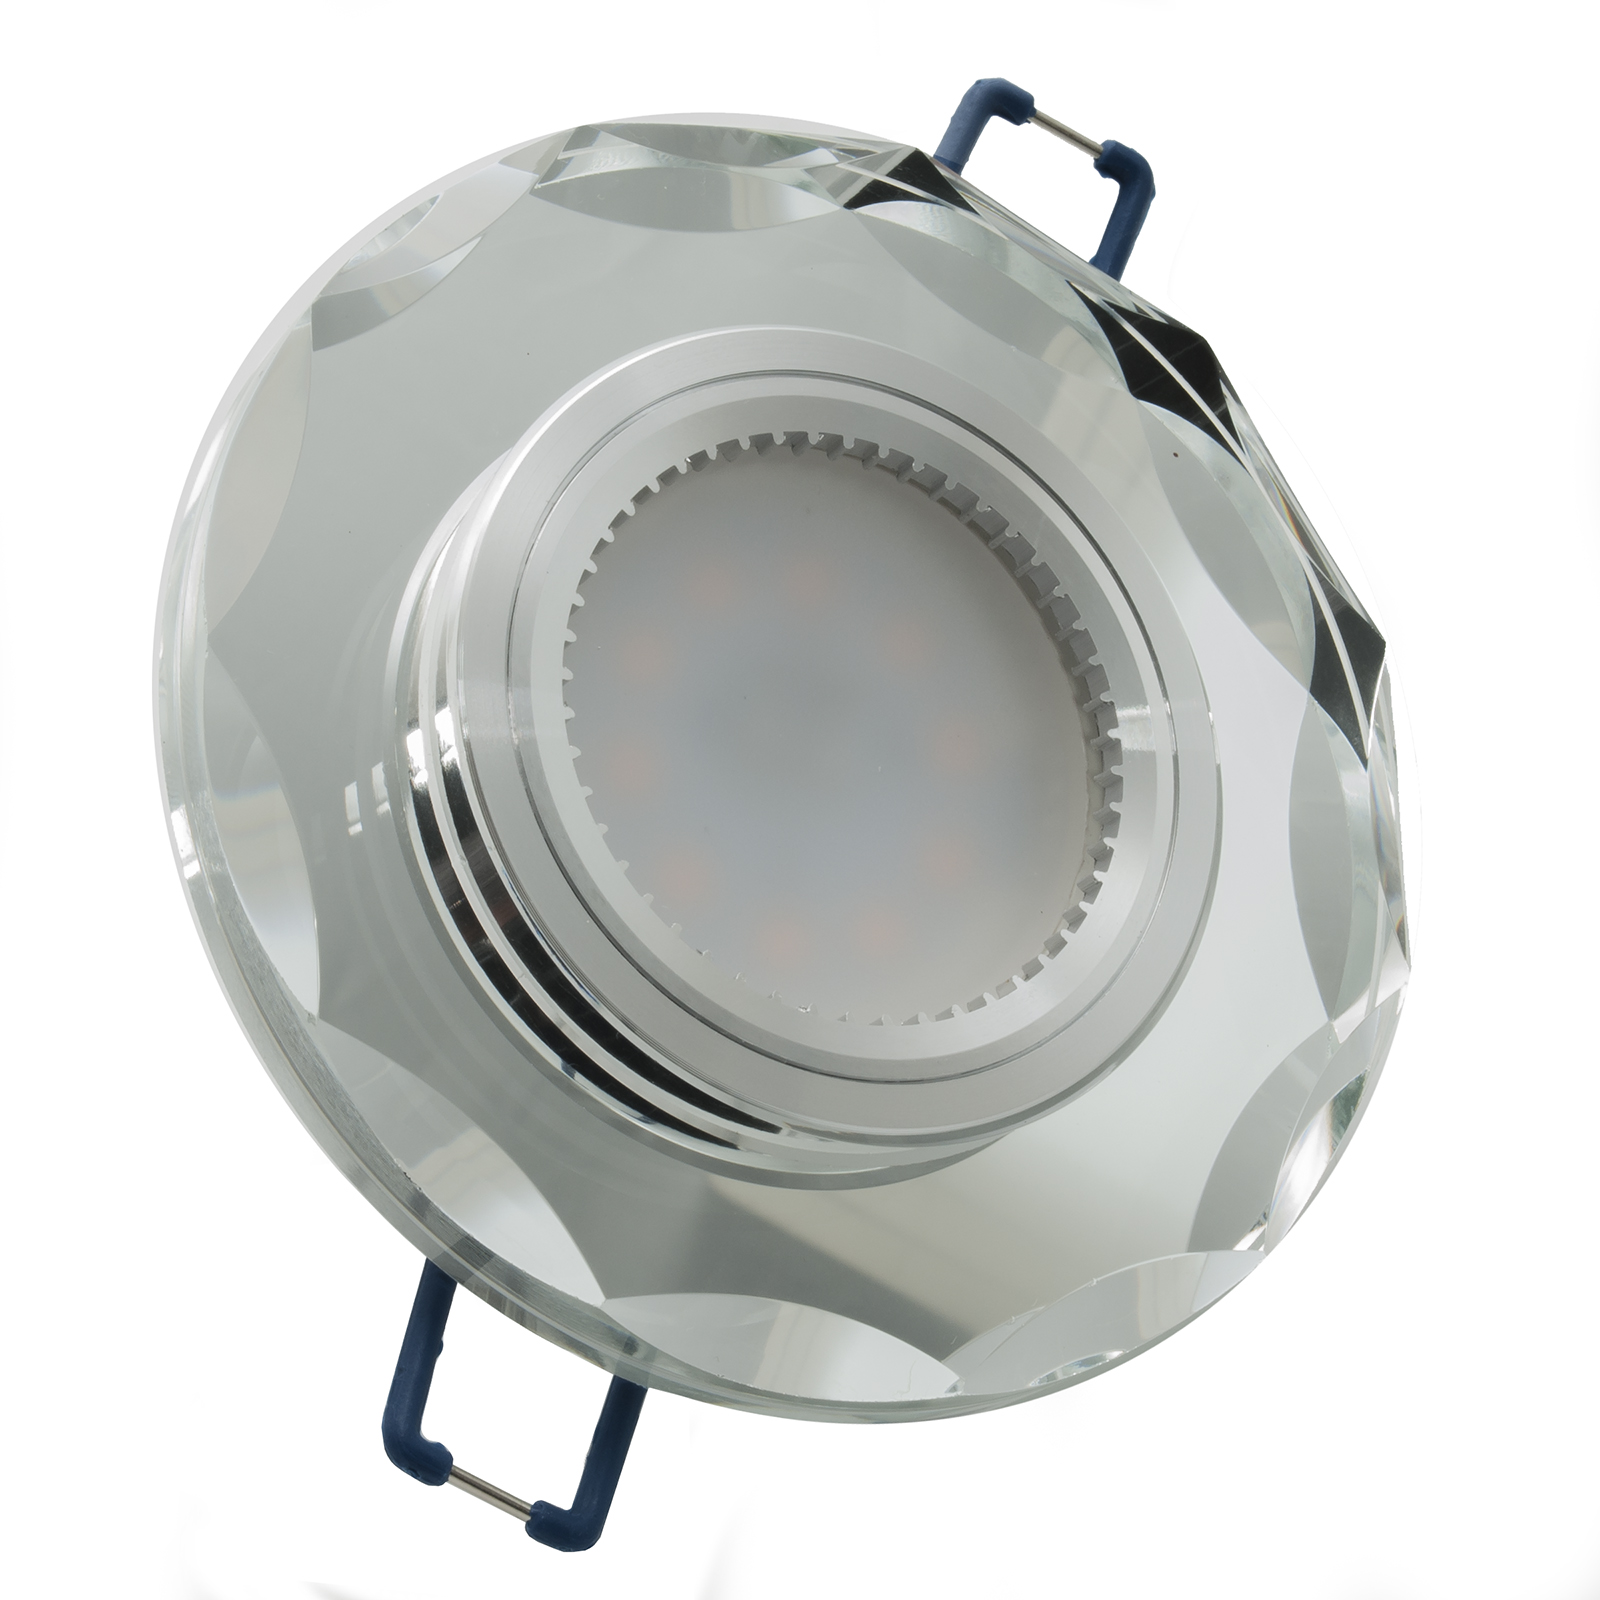 Spotlight round LED 8W GU10 glass mirror with diffused light 150 hole for built-in 6cm 220V